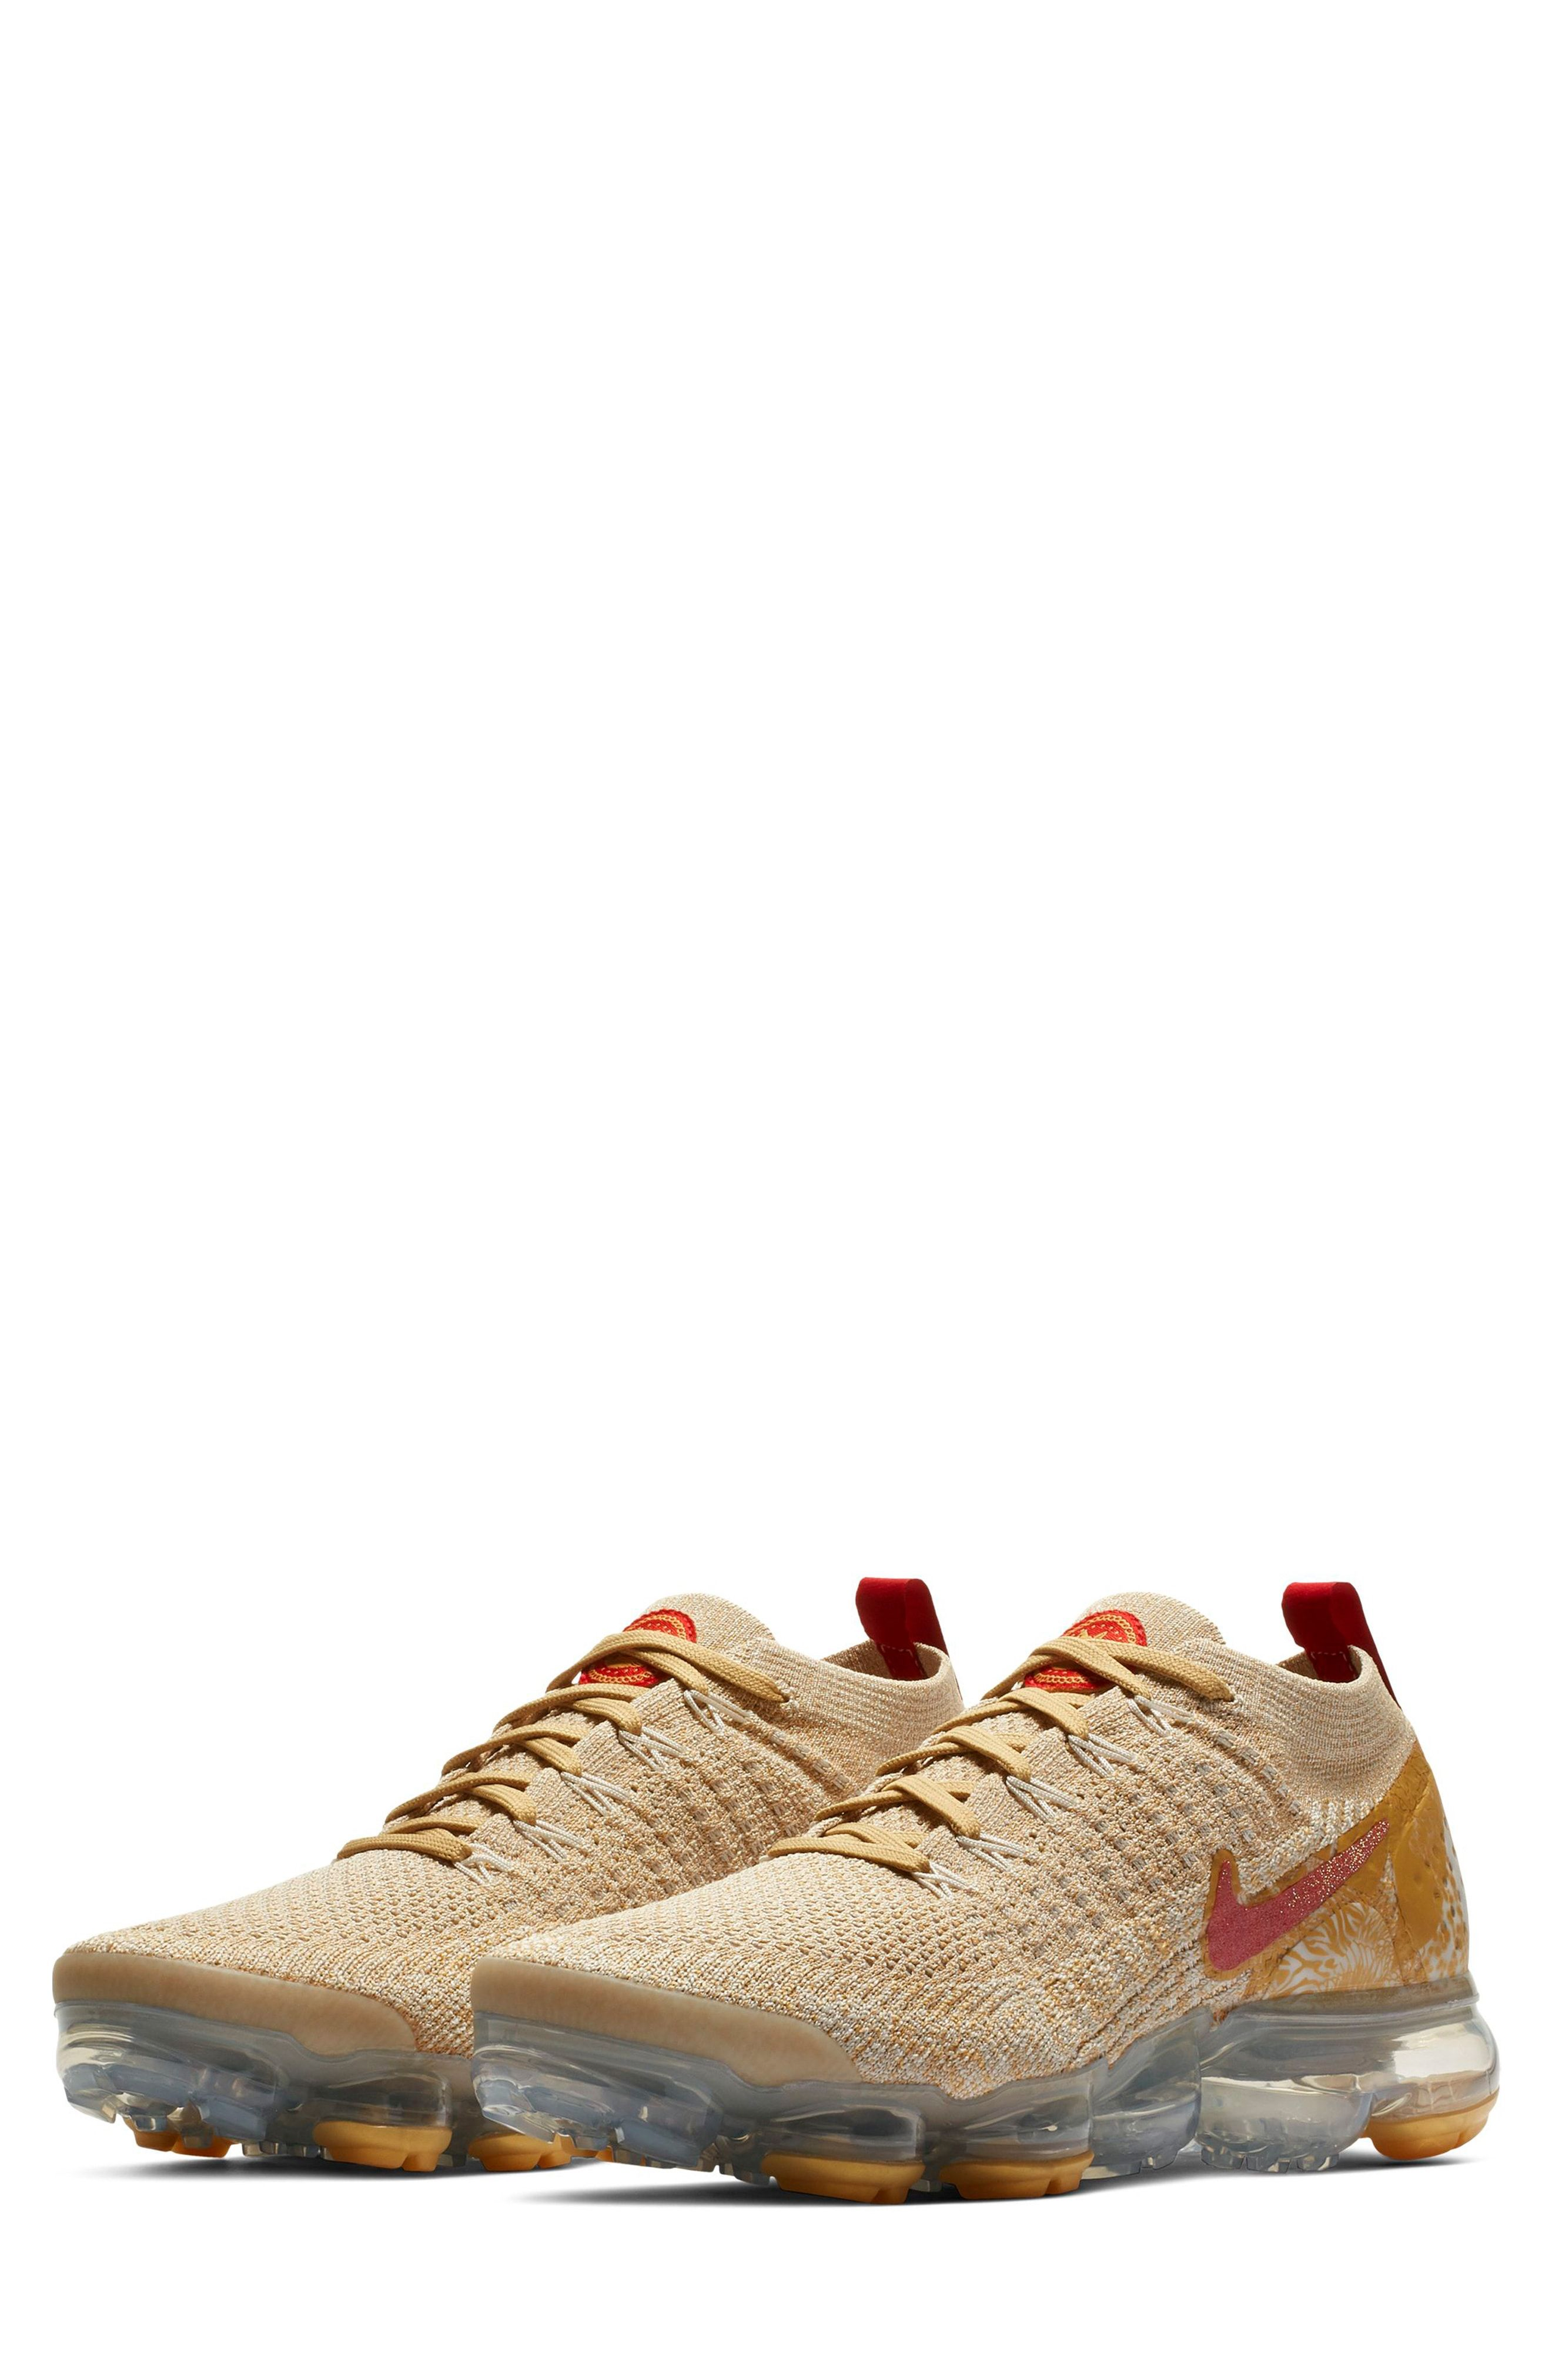 watch 95dd8 90c8b Nike Air Vapormax Flyknit 2 Chinese New Year Running Shoe available at   Nordstrom